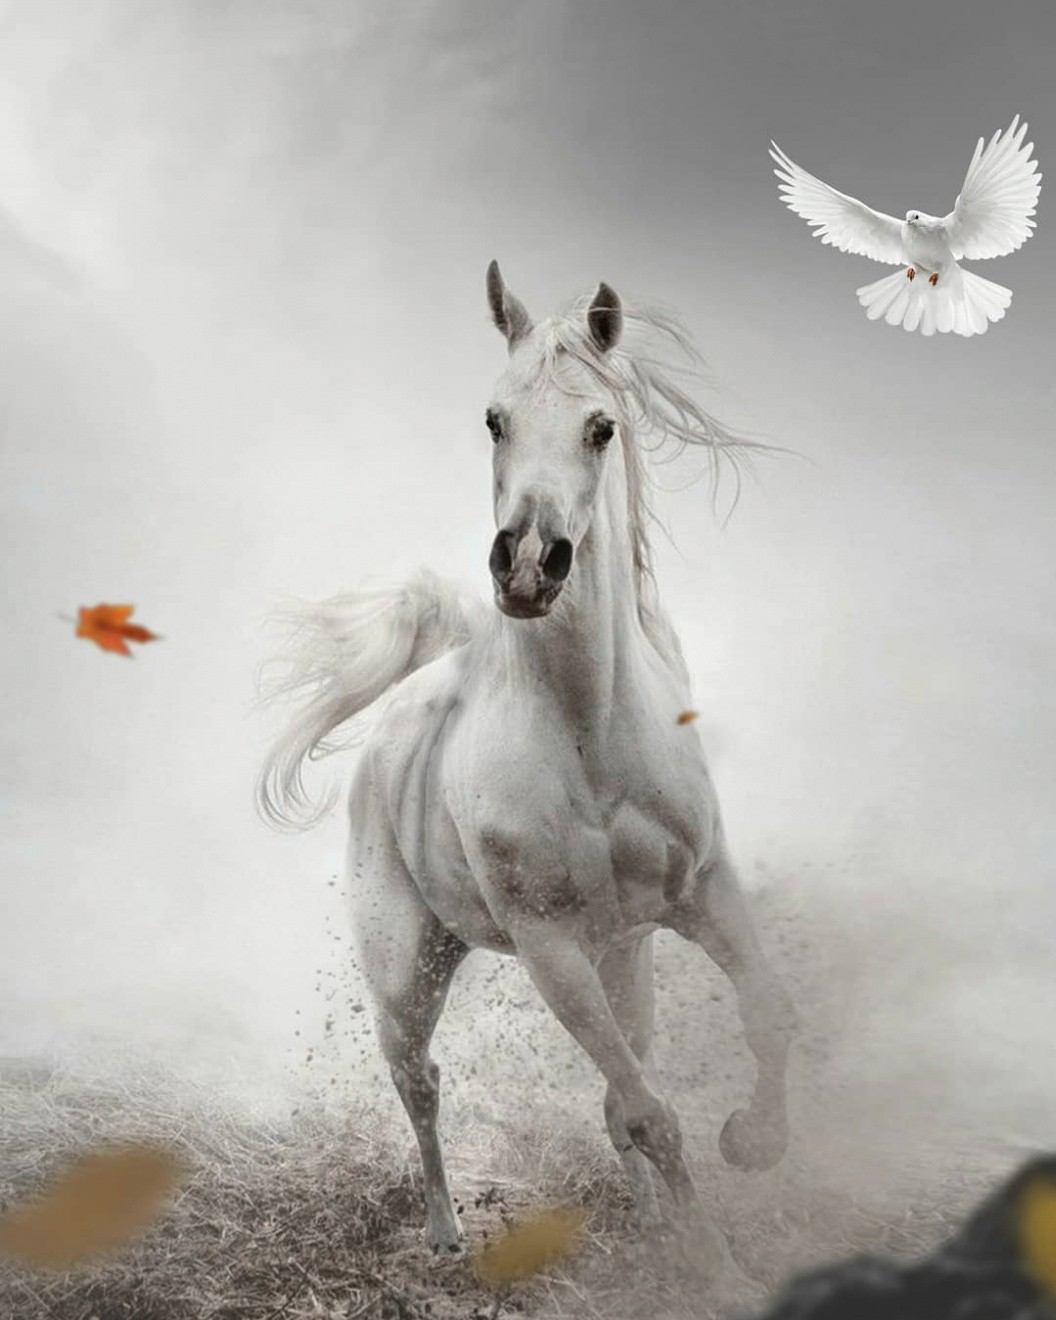 Horse Running Poster Editing Background